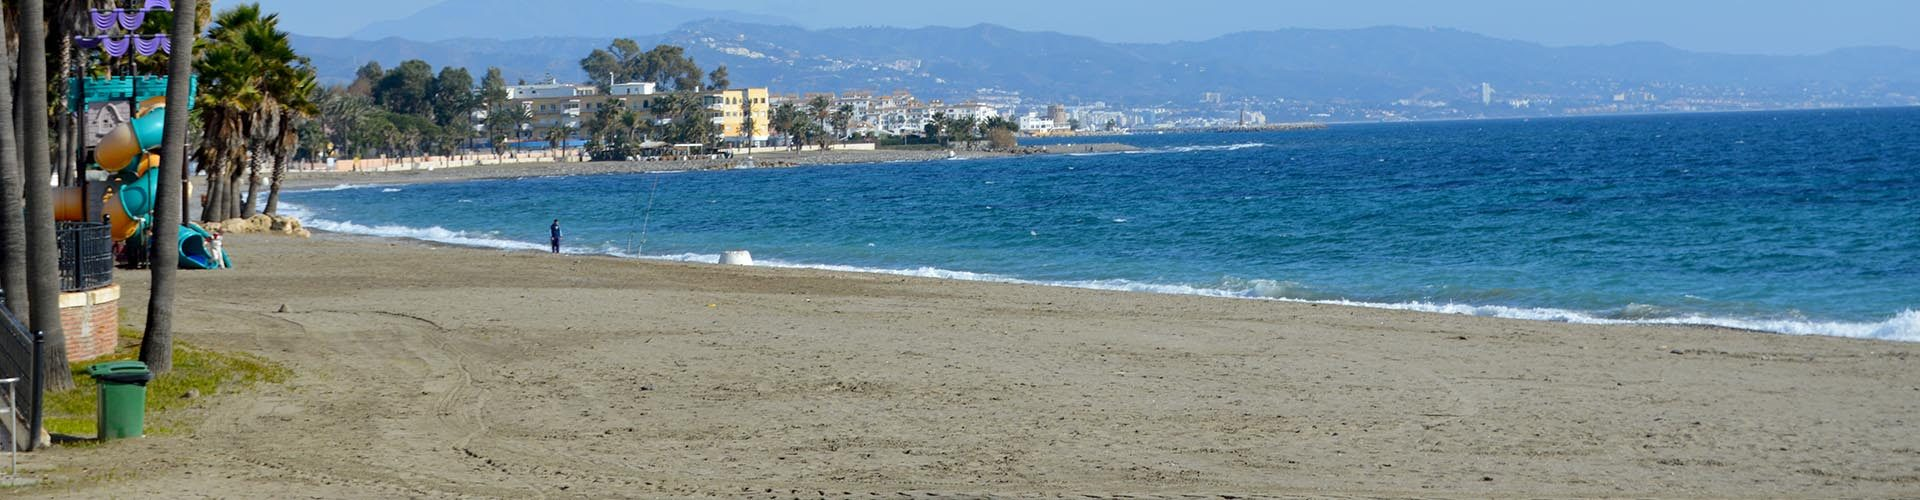 The San Pedro beachside area - Marbella Unique Properties